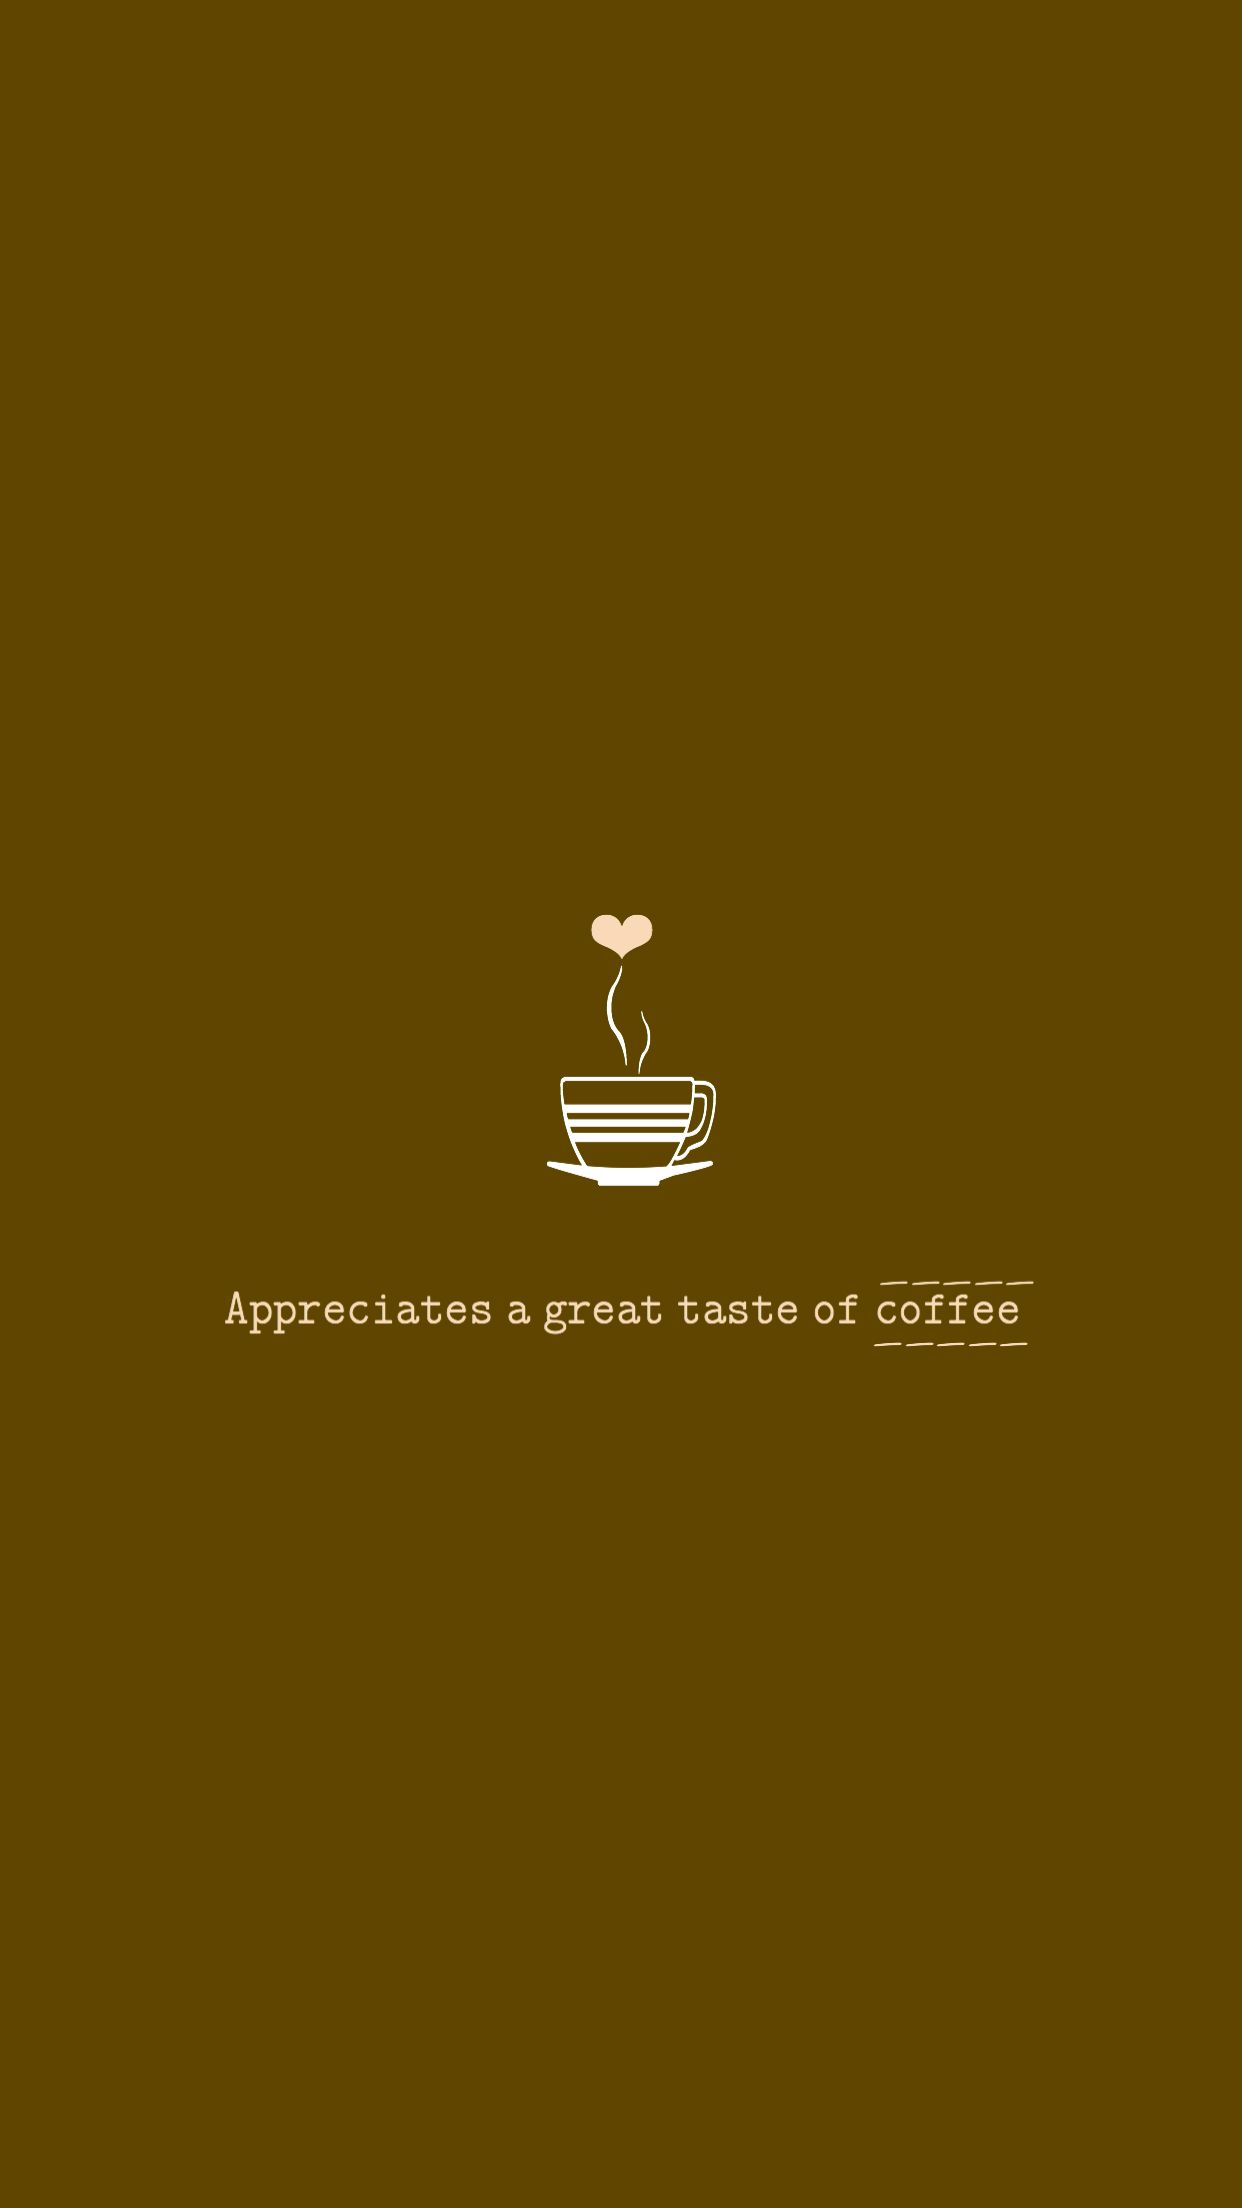 To All Coffee Lovers Coffee Wallpaper Iphone Coffee Wallpaper Coffee Iphone Wallpaper Cute aesthetic wallpapers coffee